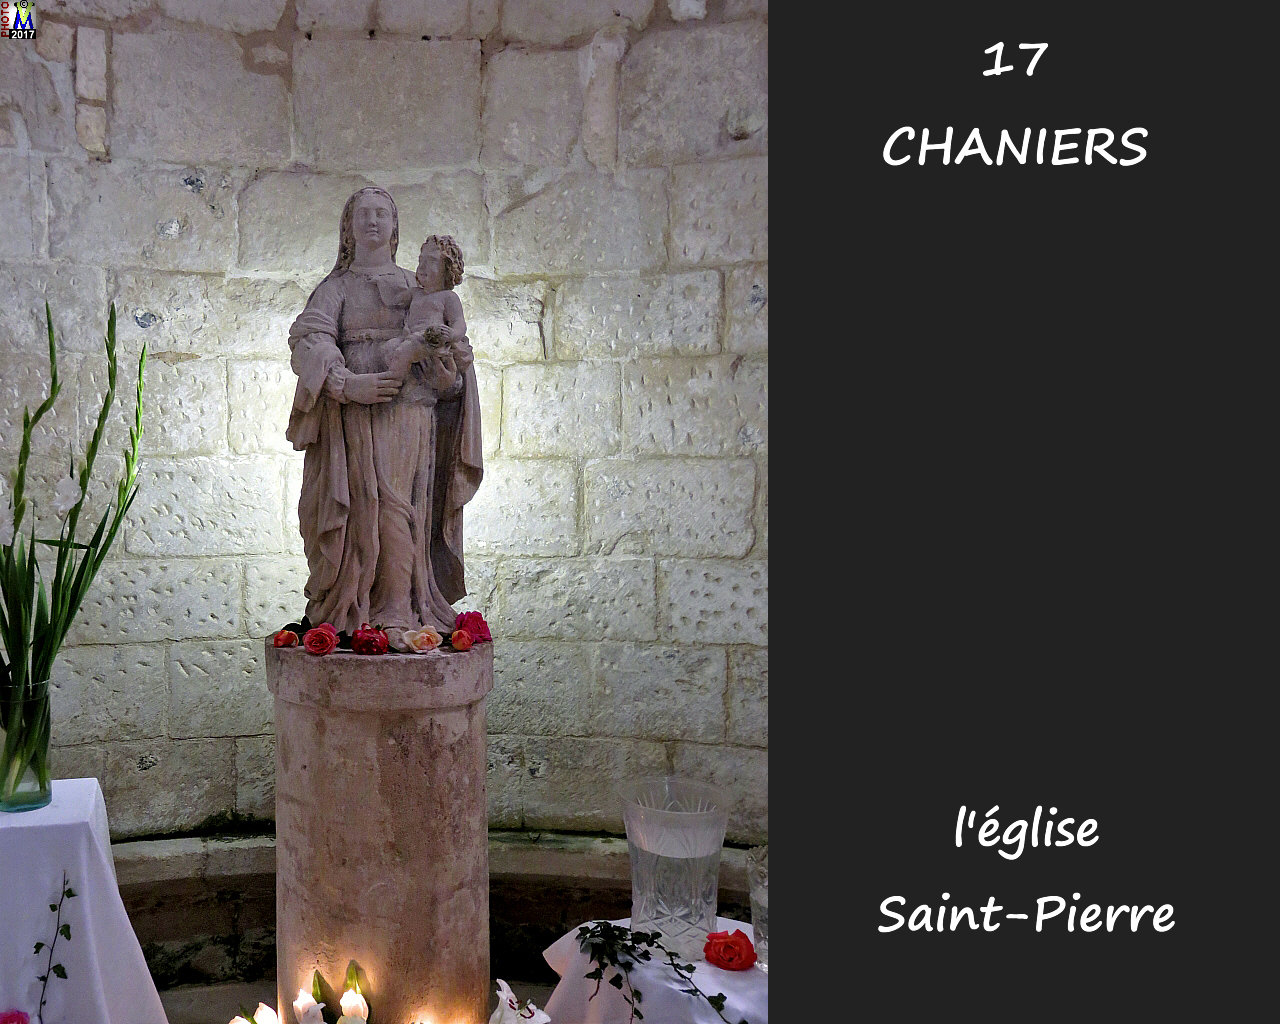 17CHANIERS_eglise_1140.jpg